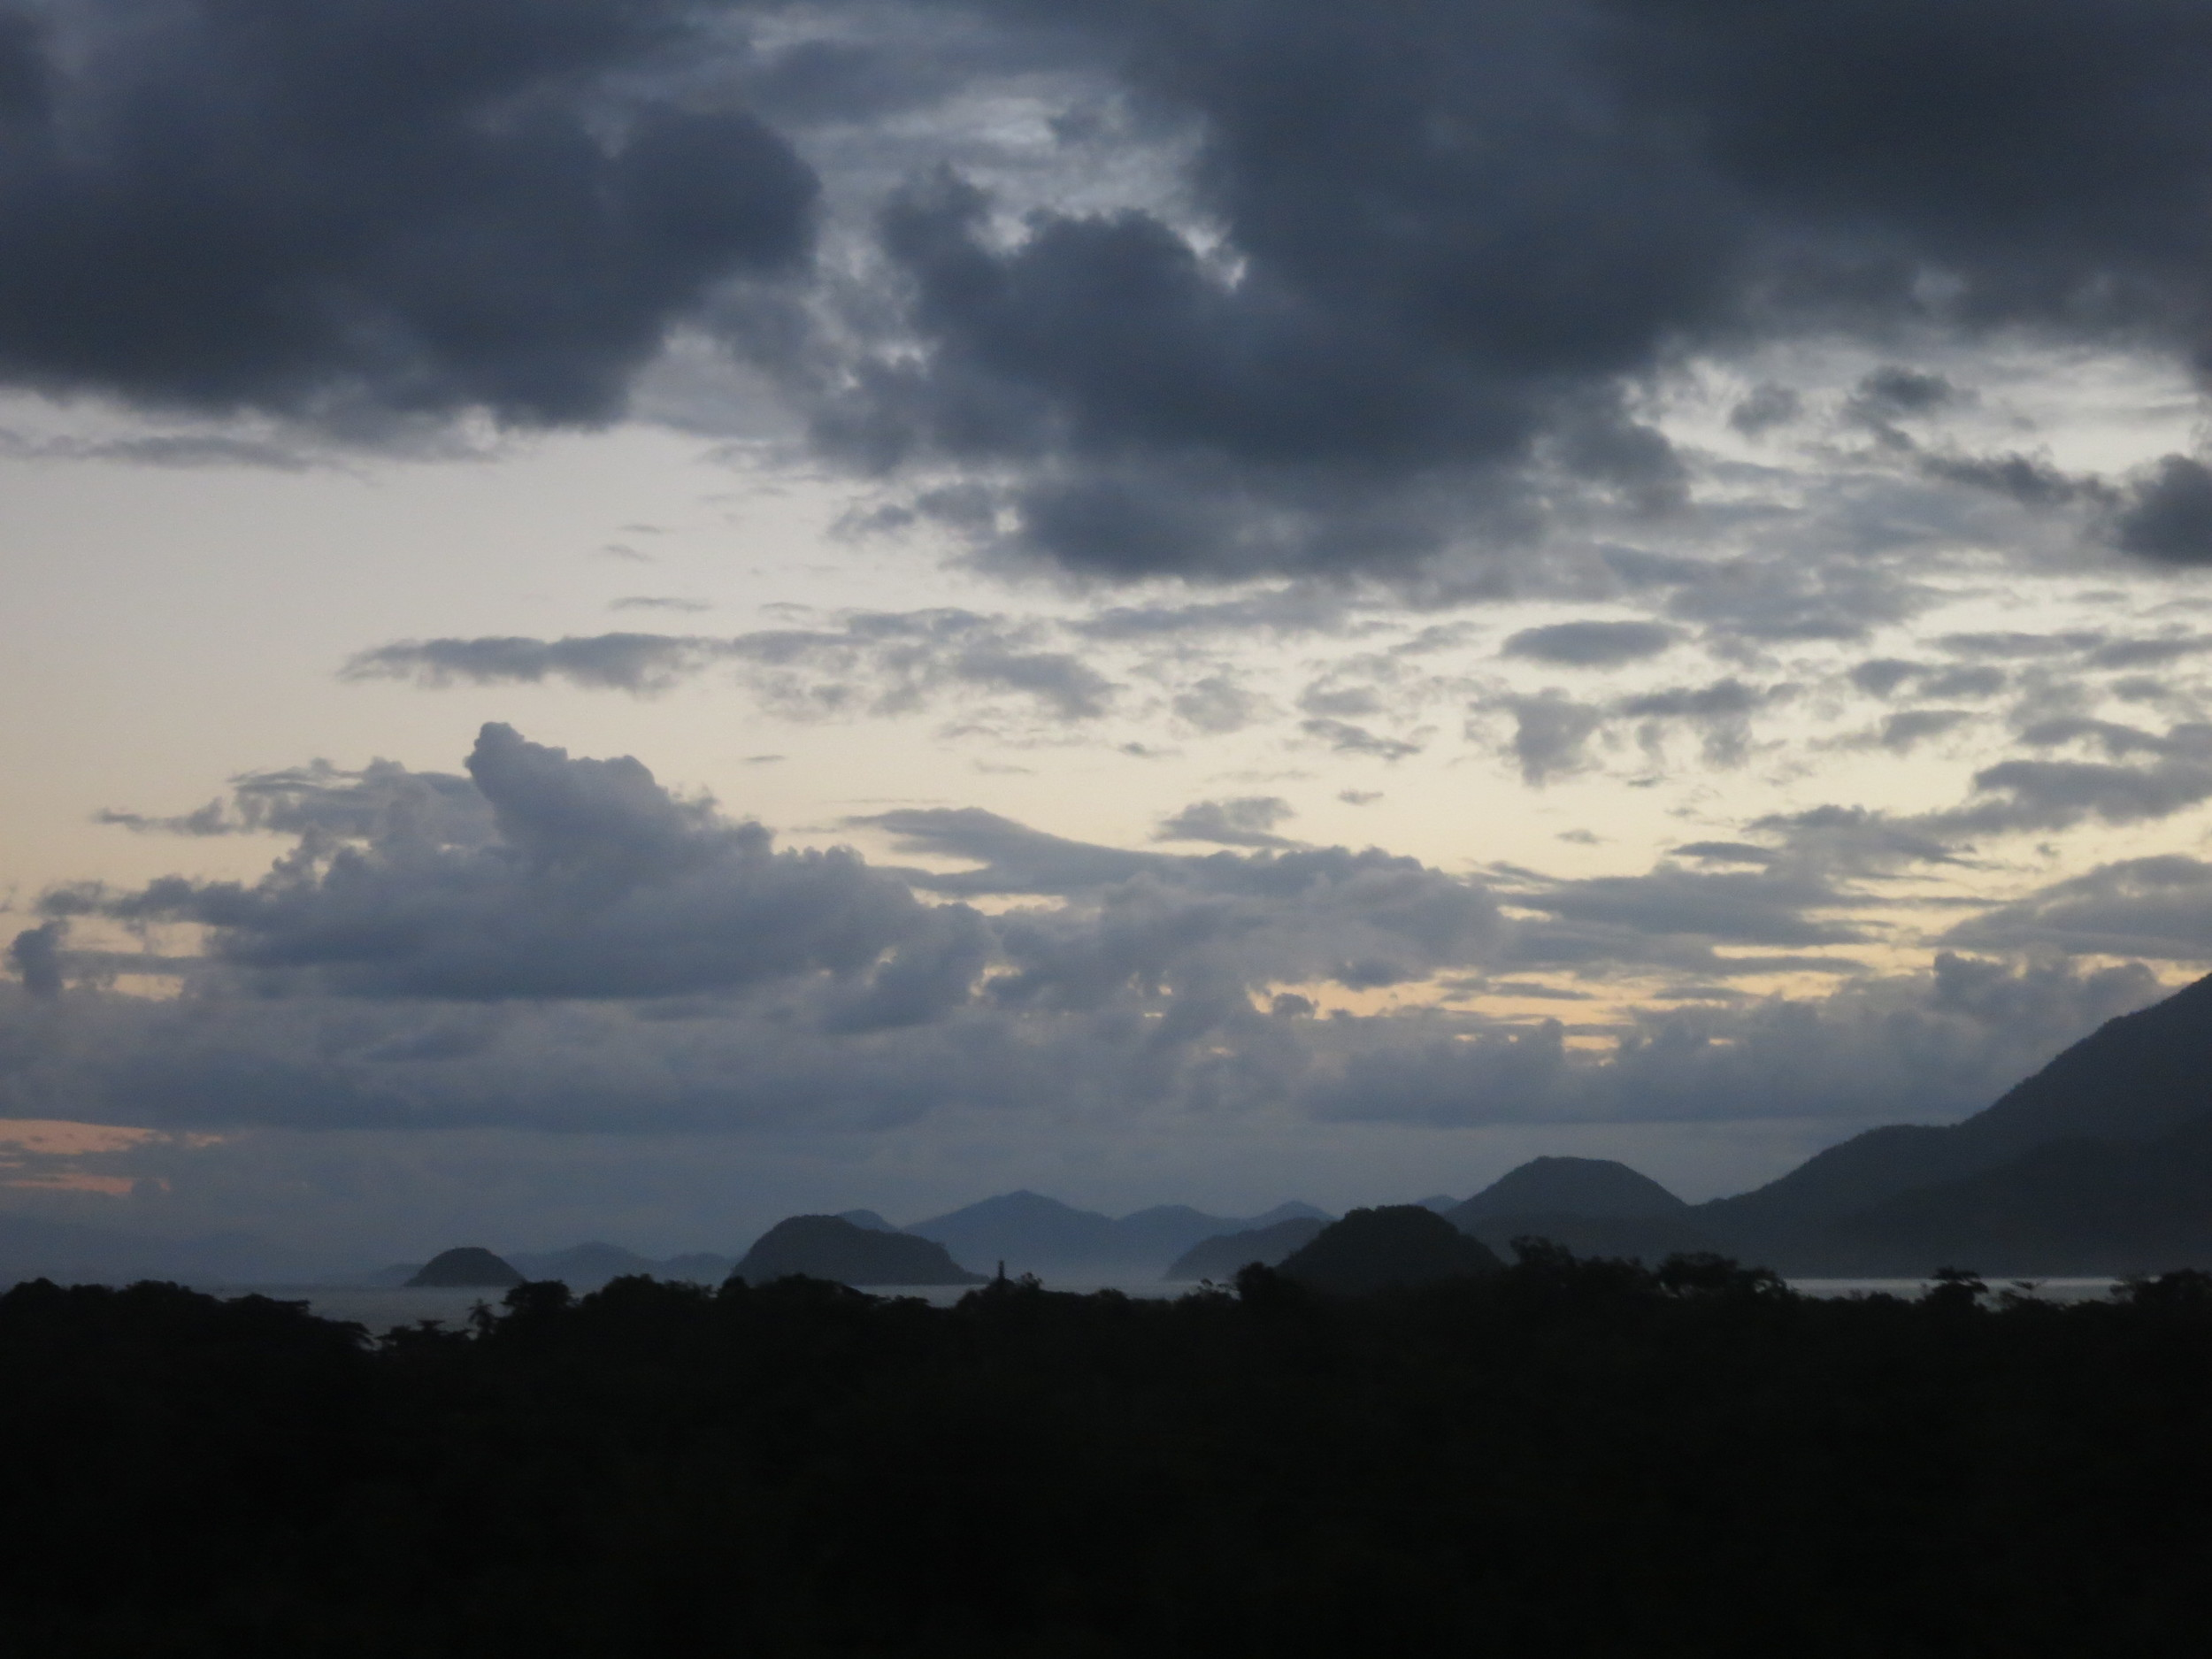 The view driving into Paraty